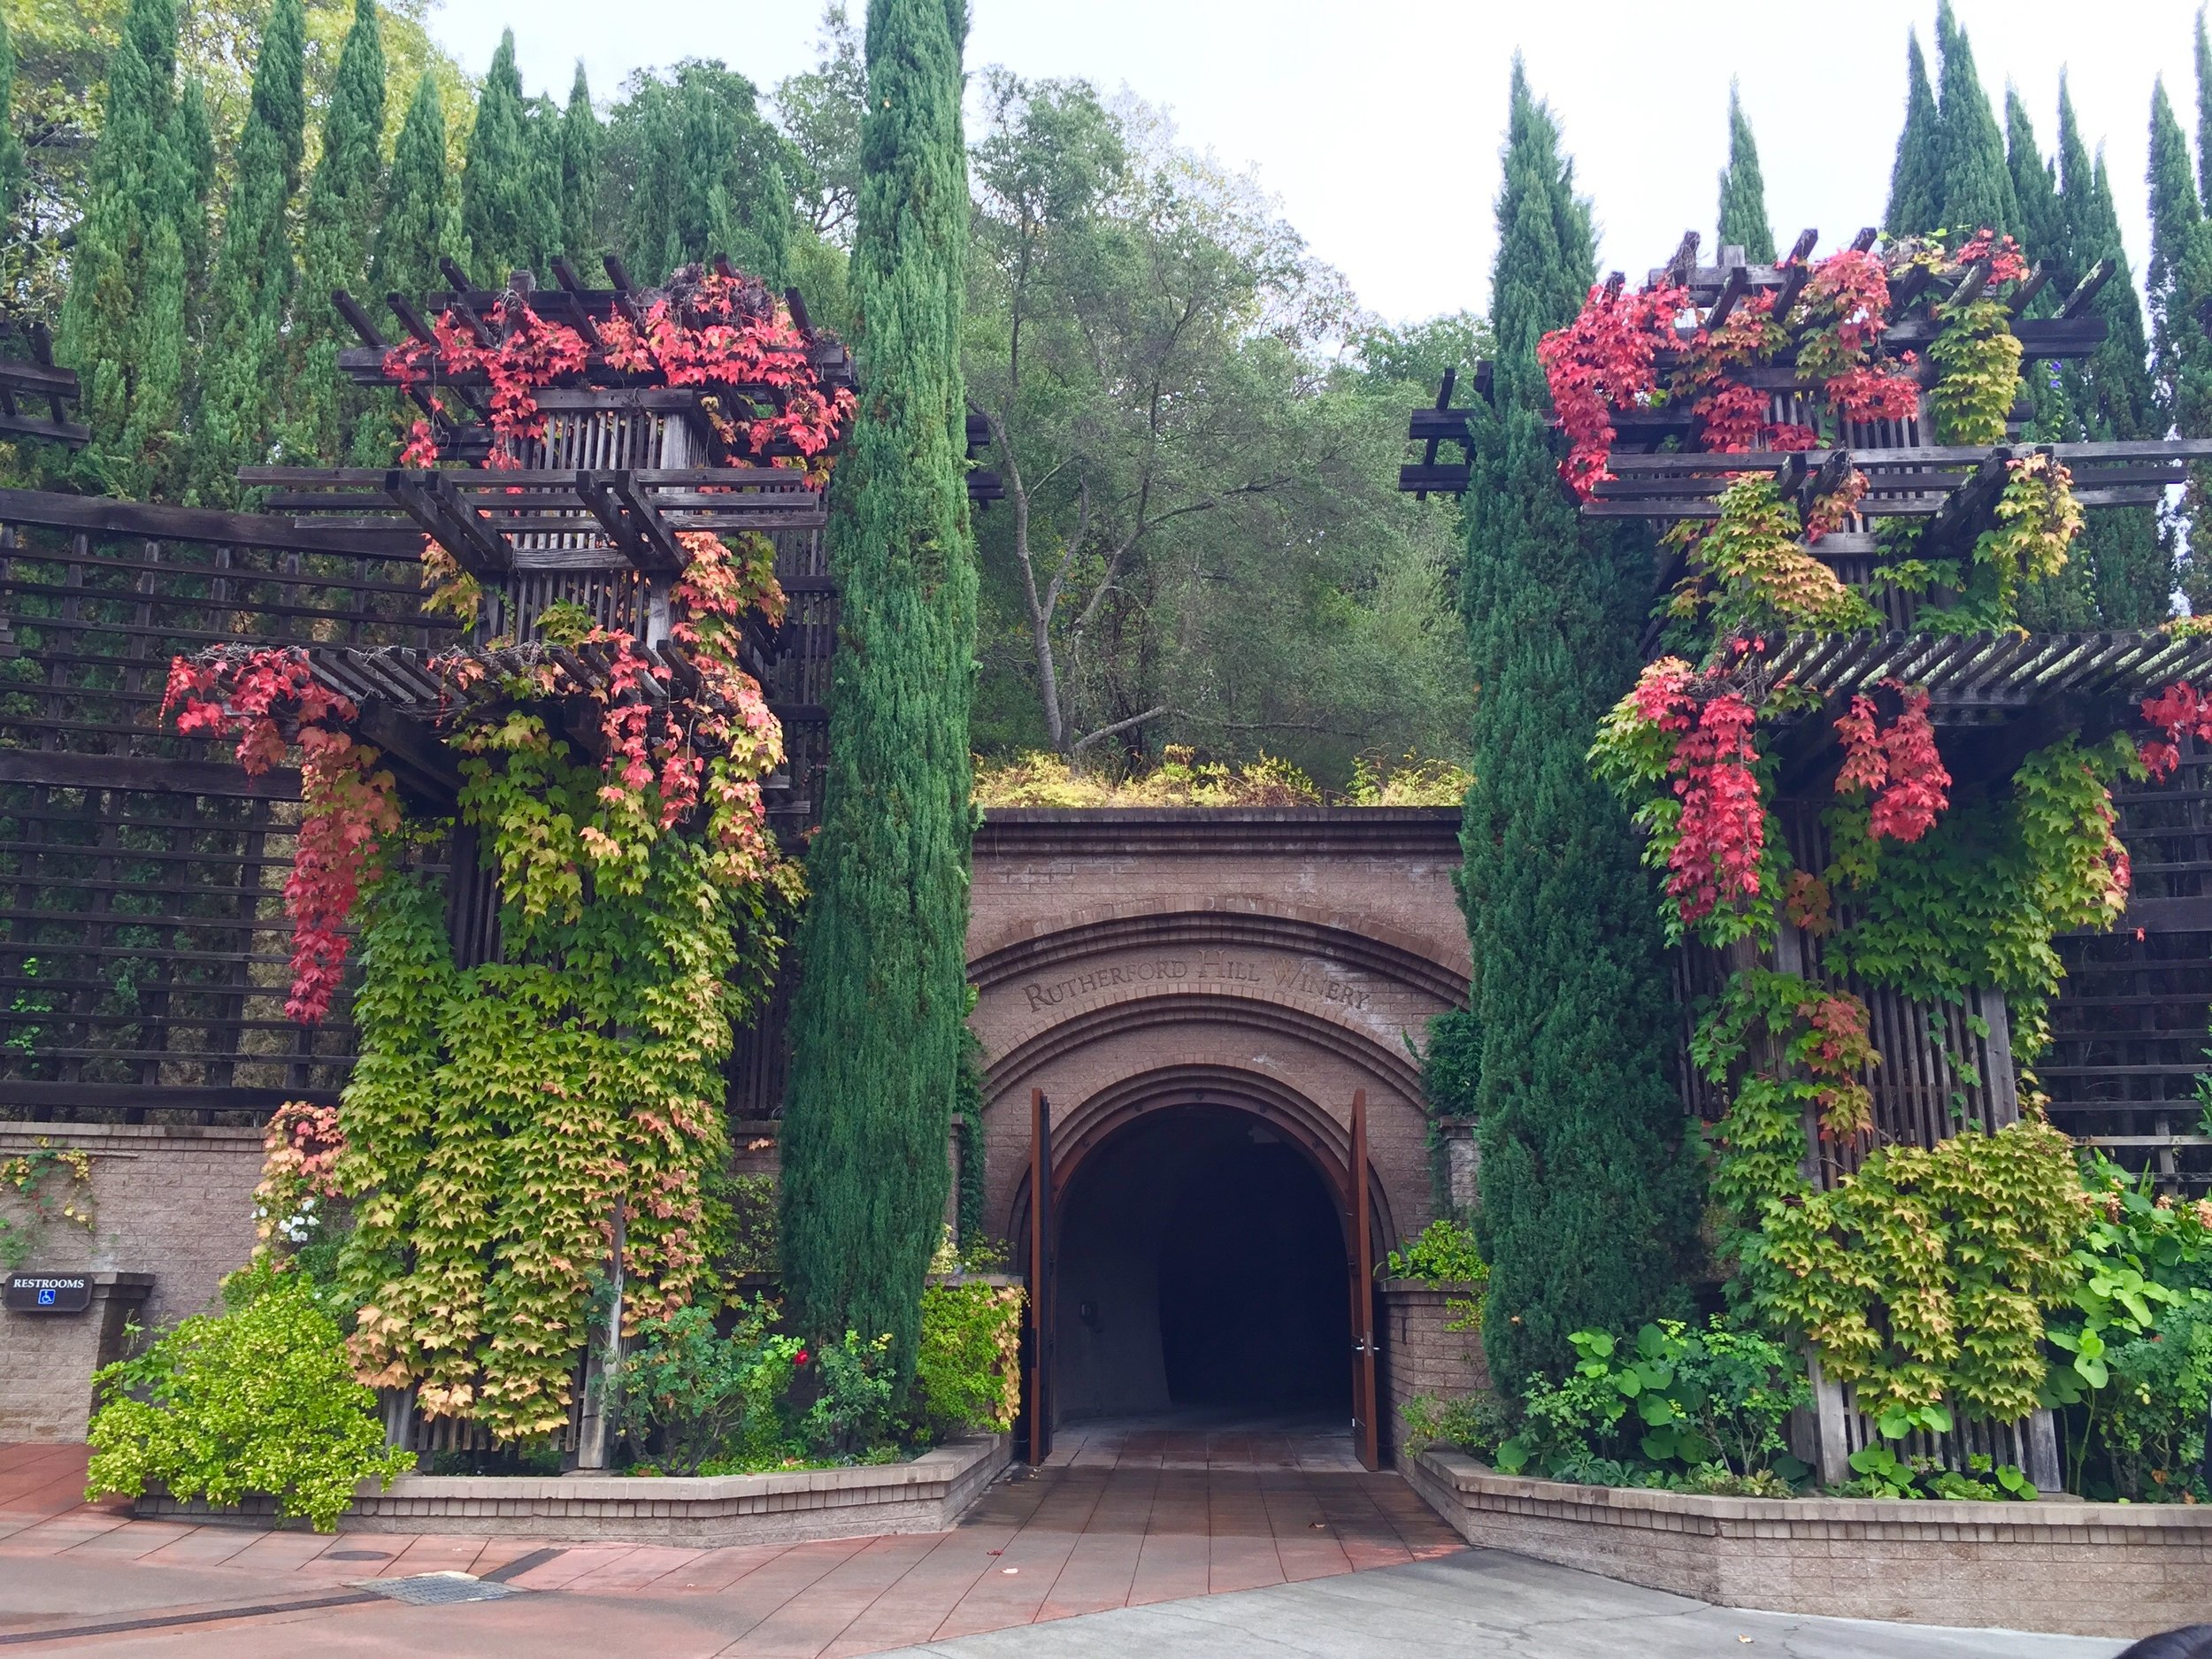 Entrance to the caves at Rutherford Hill Winery